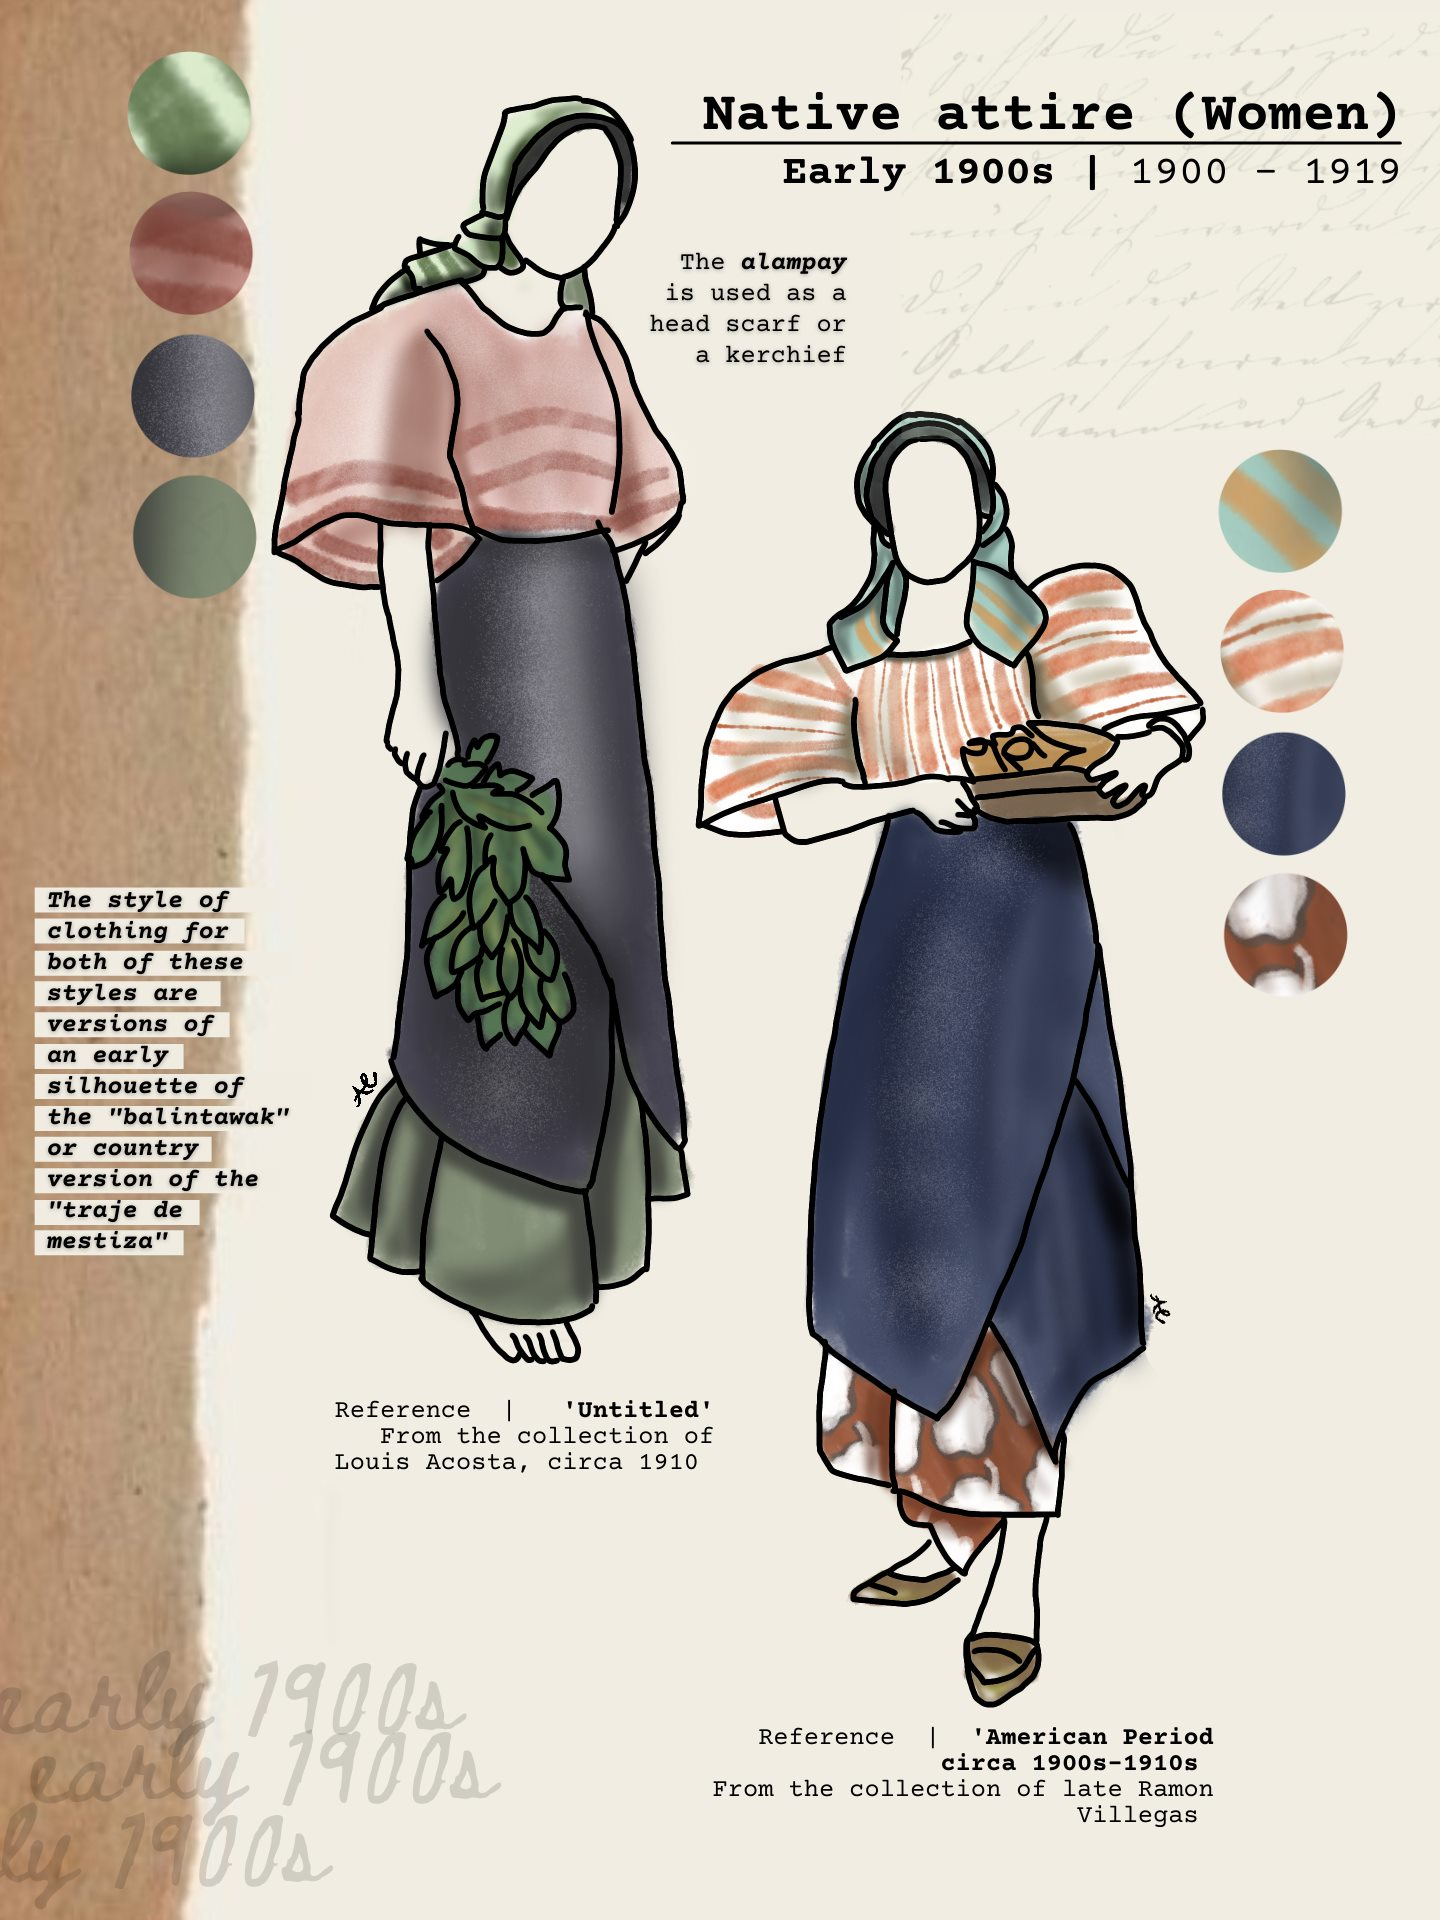 The balintawak was a country version of the traje de mestiza. The alampay in both examples is worn and used as headscarf or kerchief.